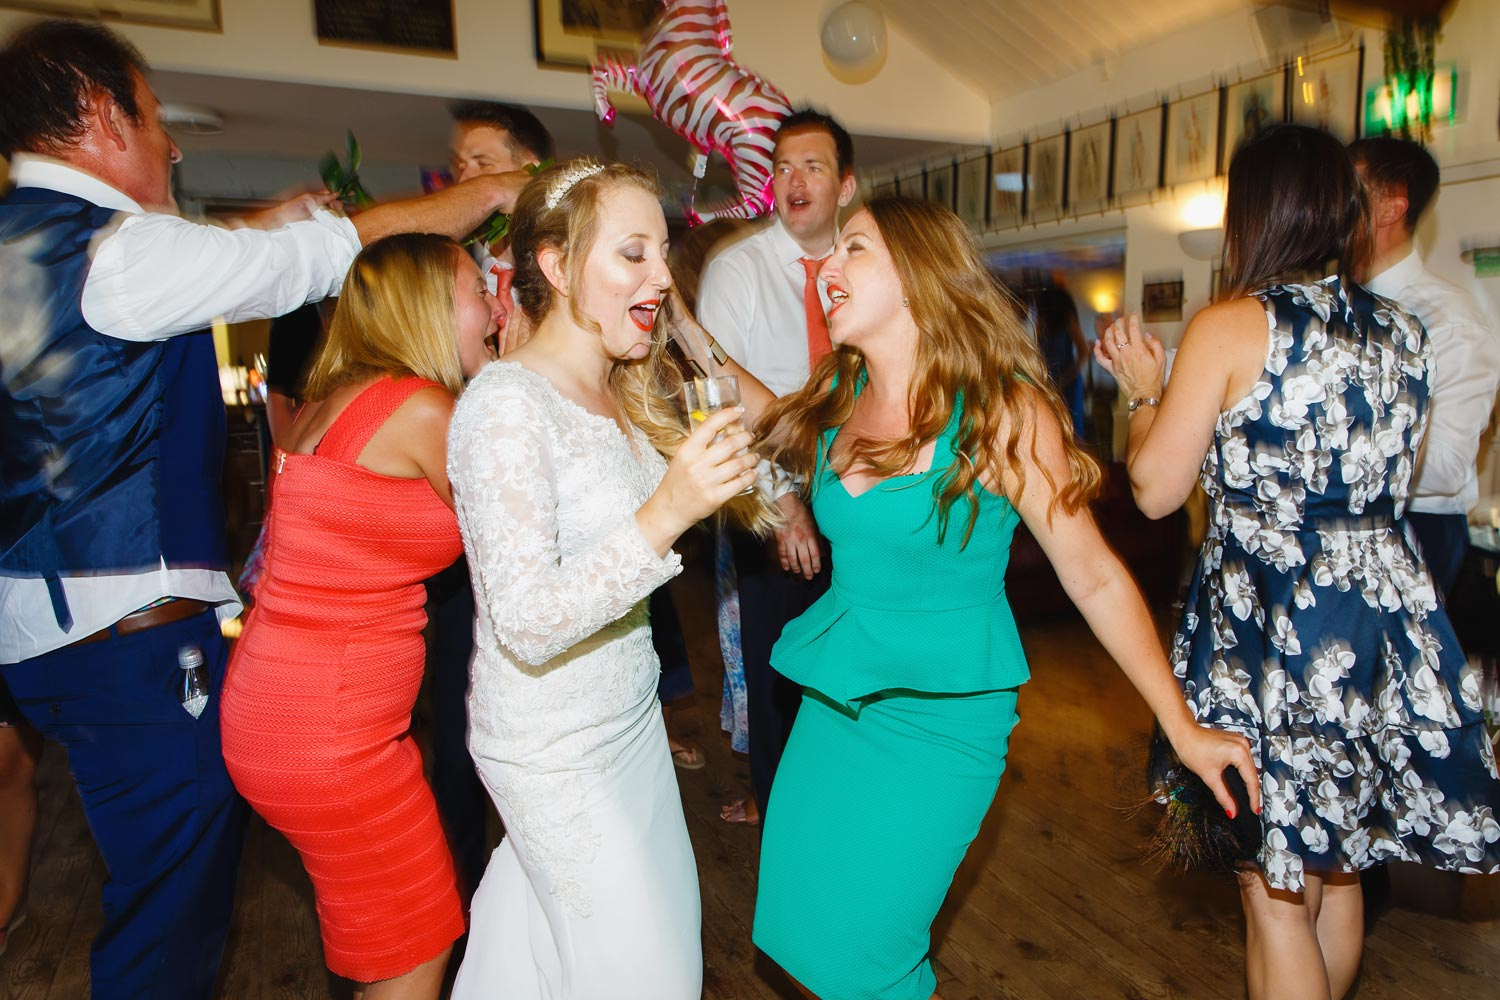 Wedding guests dance at Twickenham Rowing Club, London.